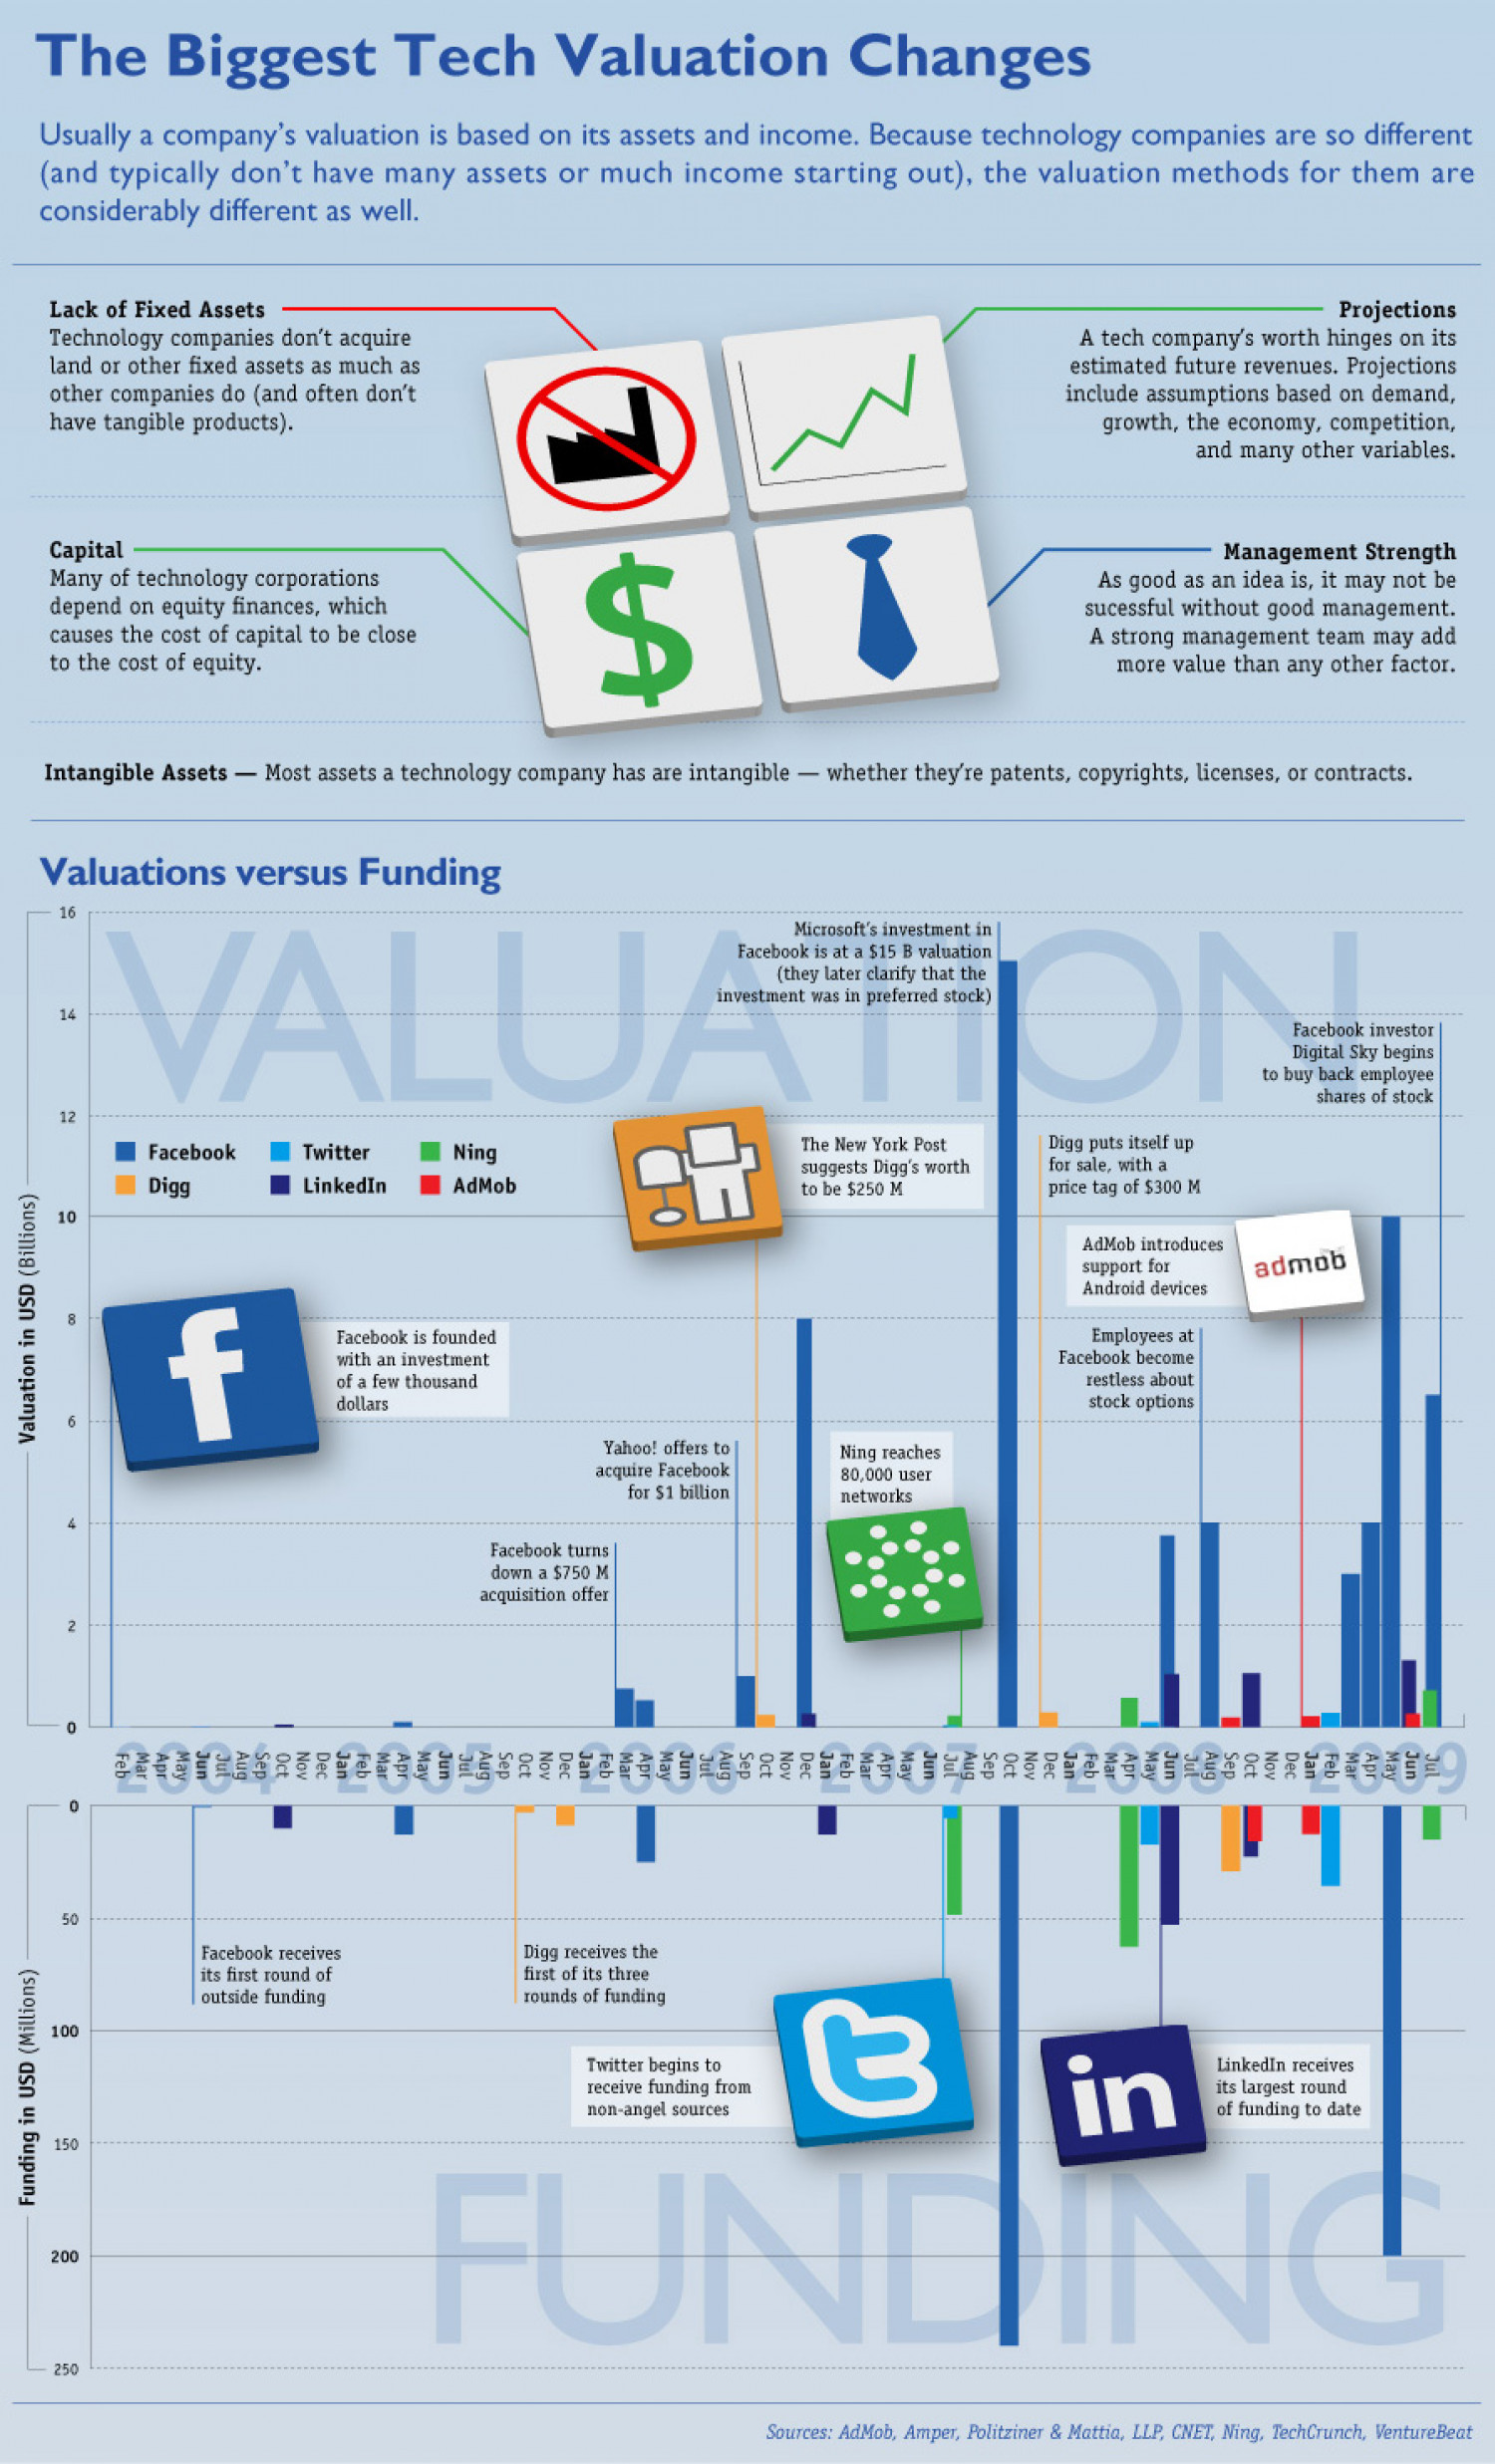 The Biggest Tech Valuation Changes Infographic